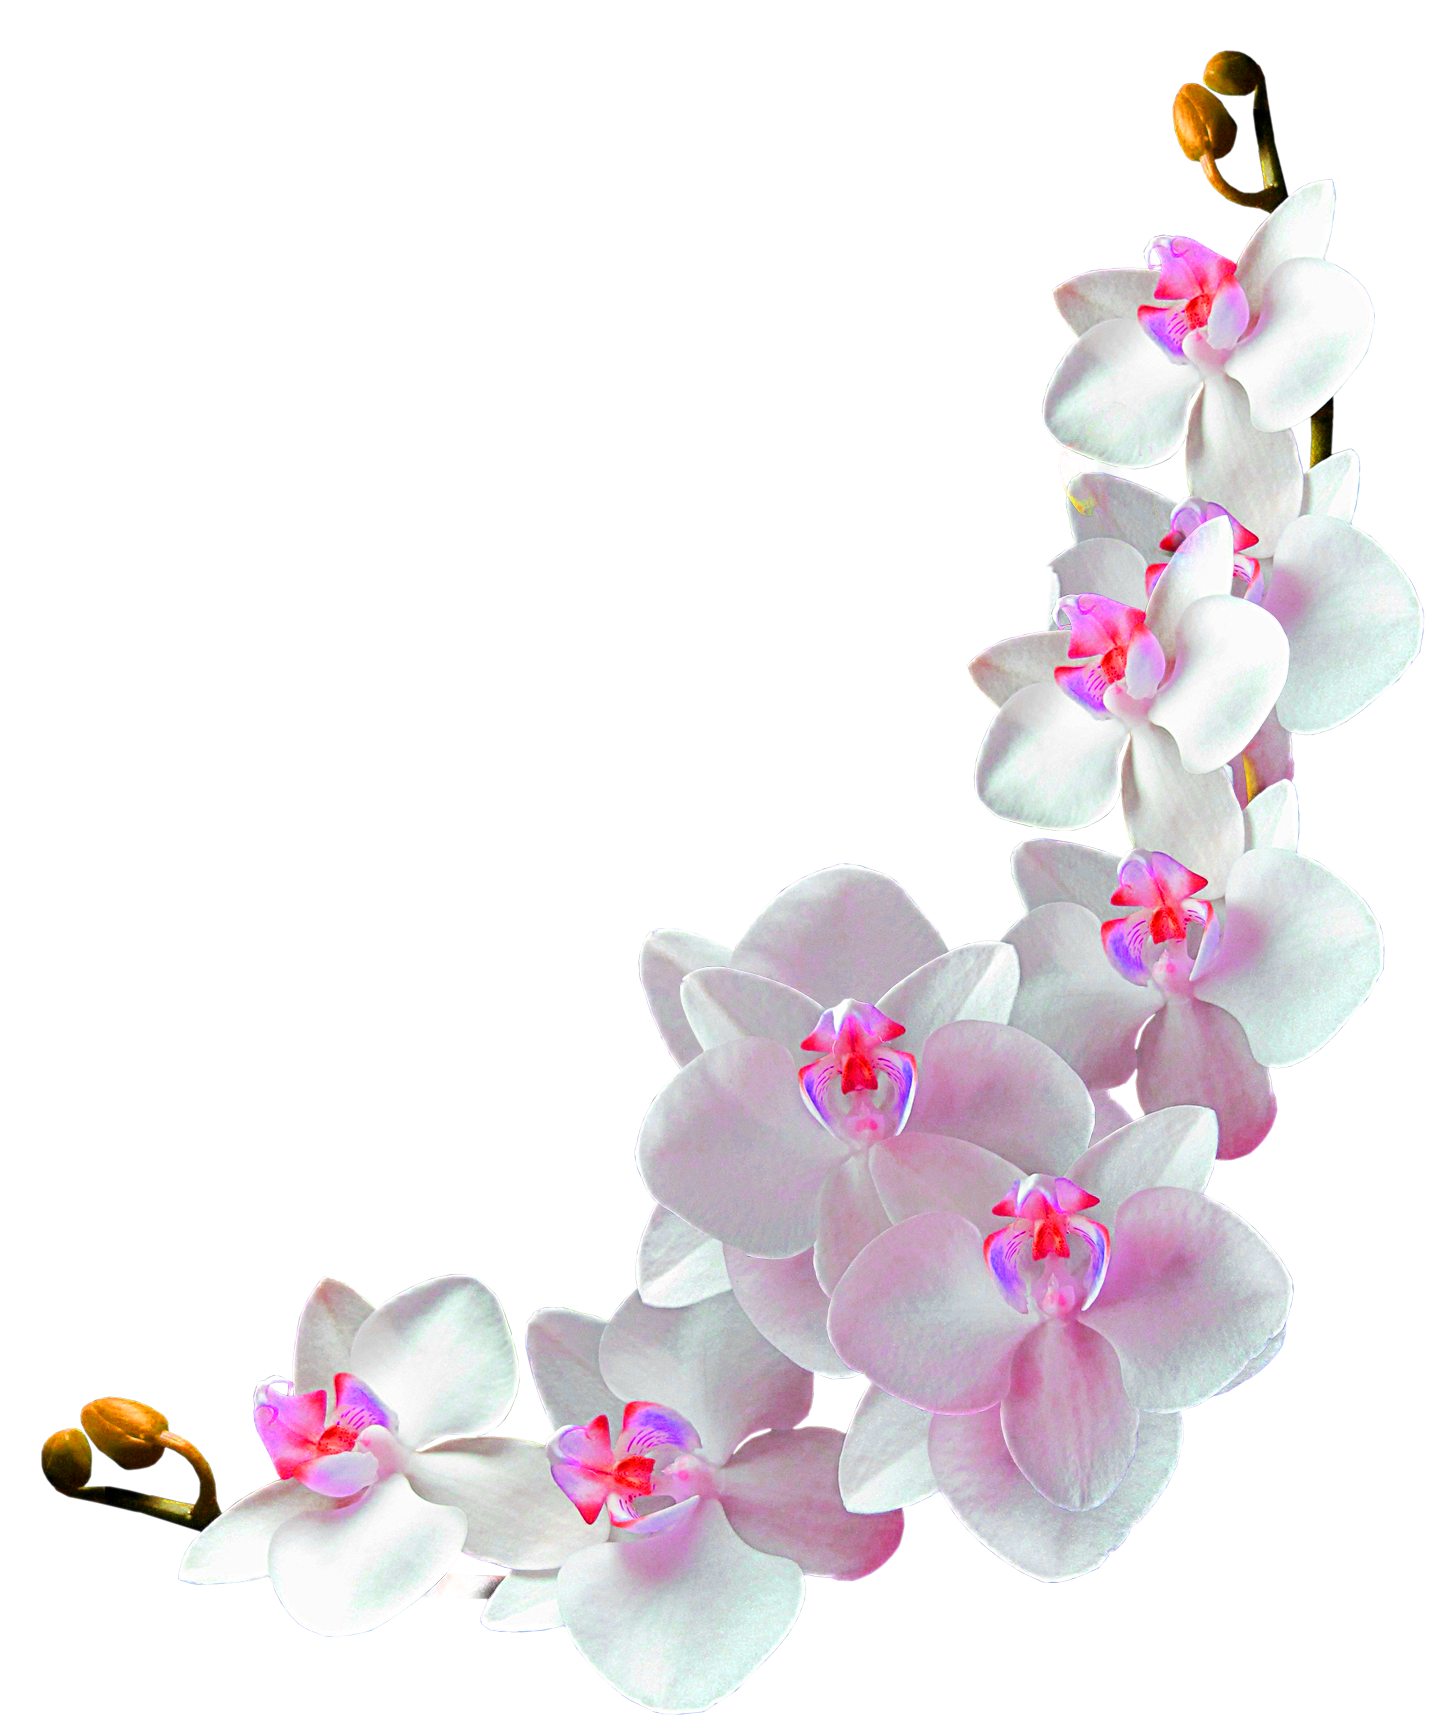 Orchids film photography clip. Orchid clipart frame